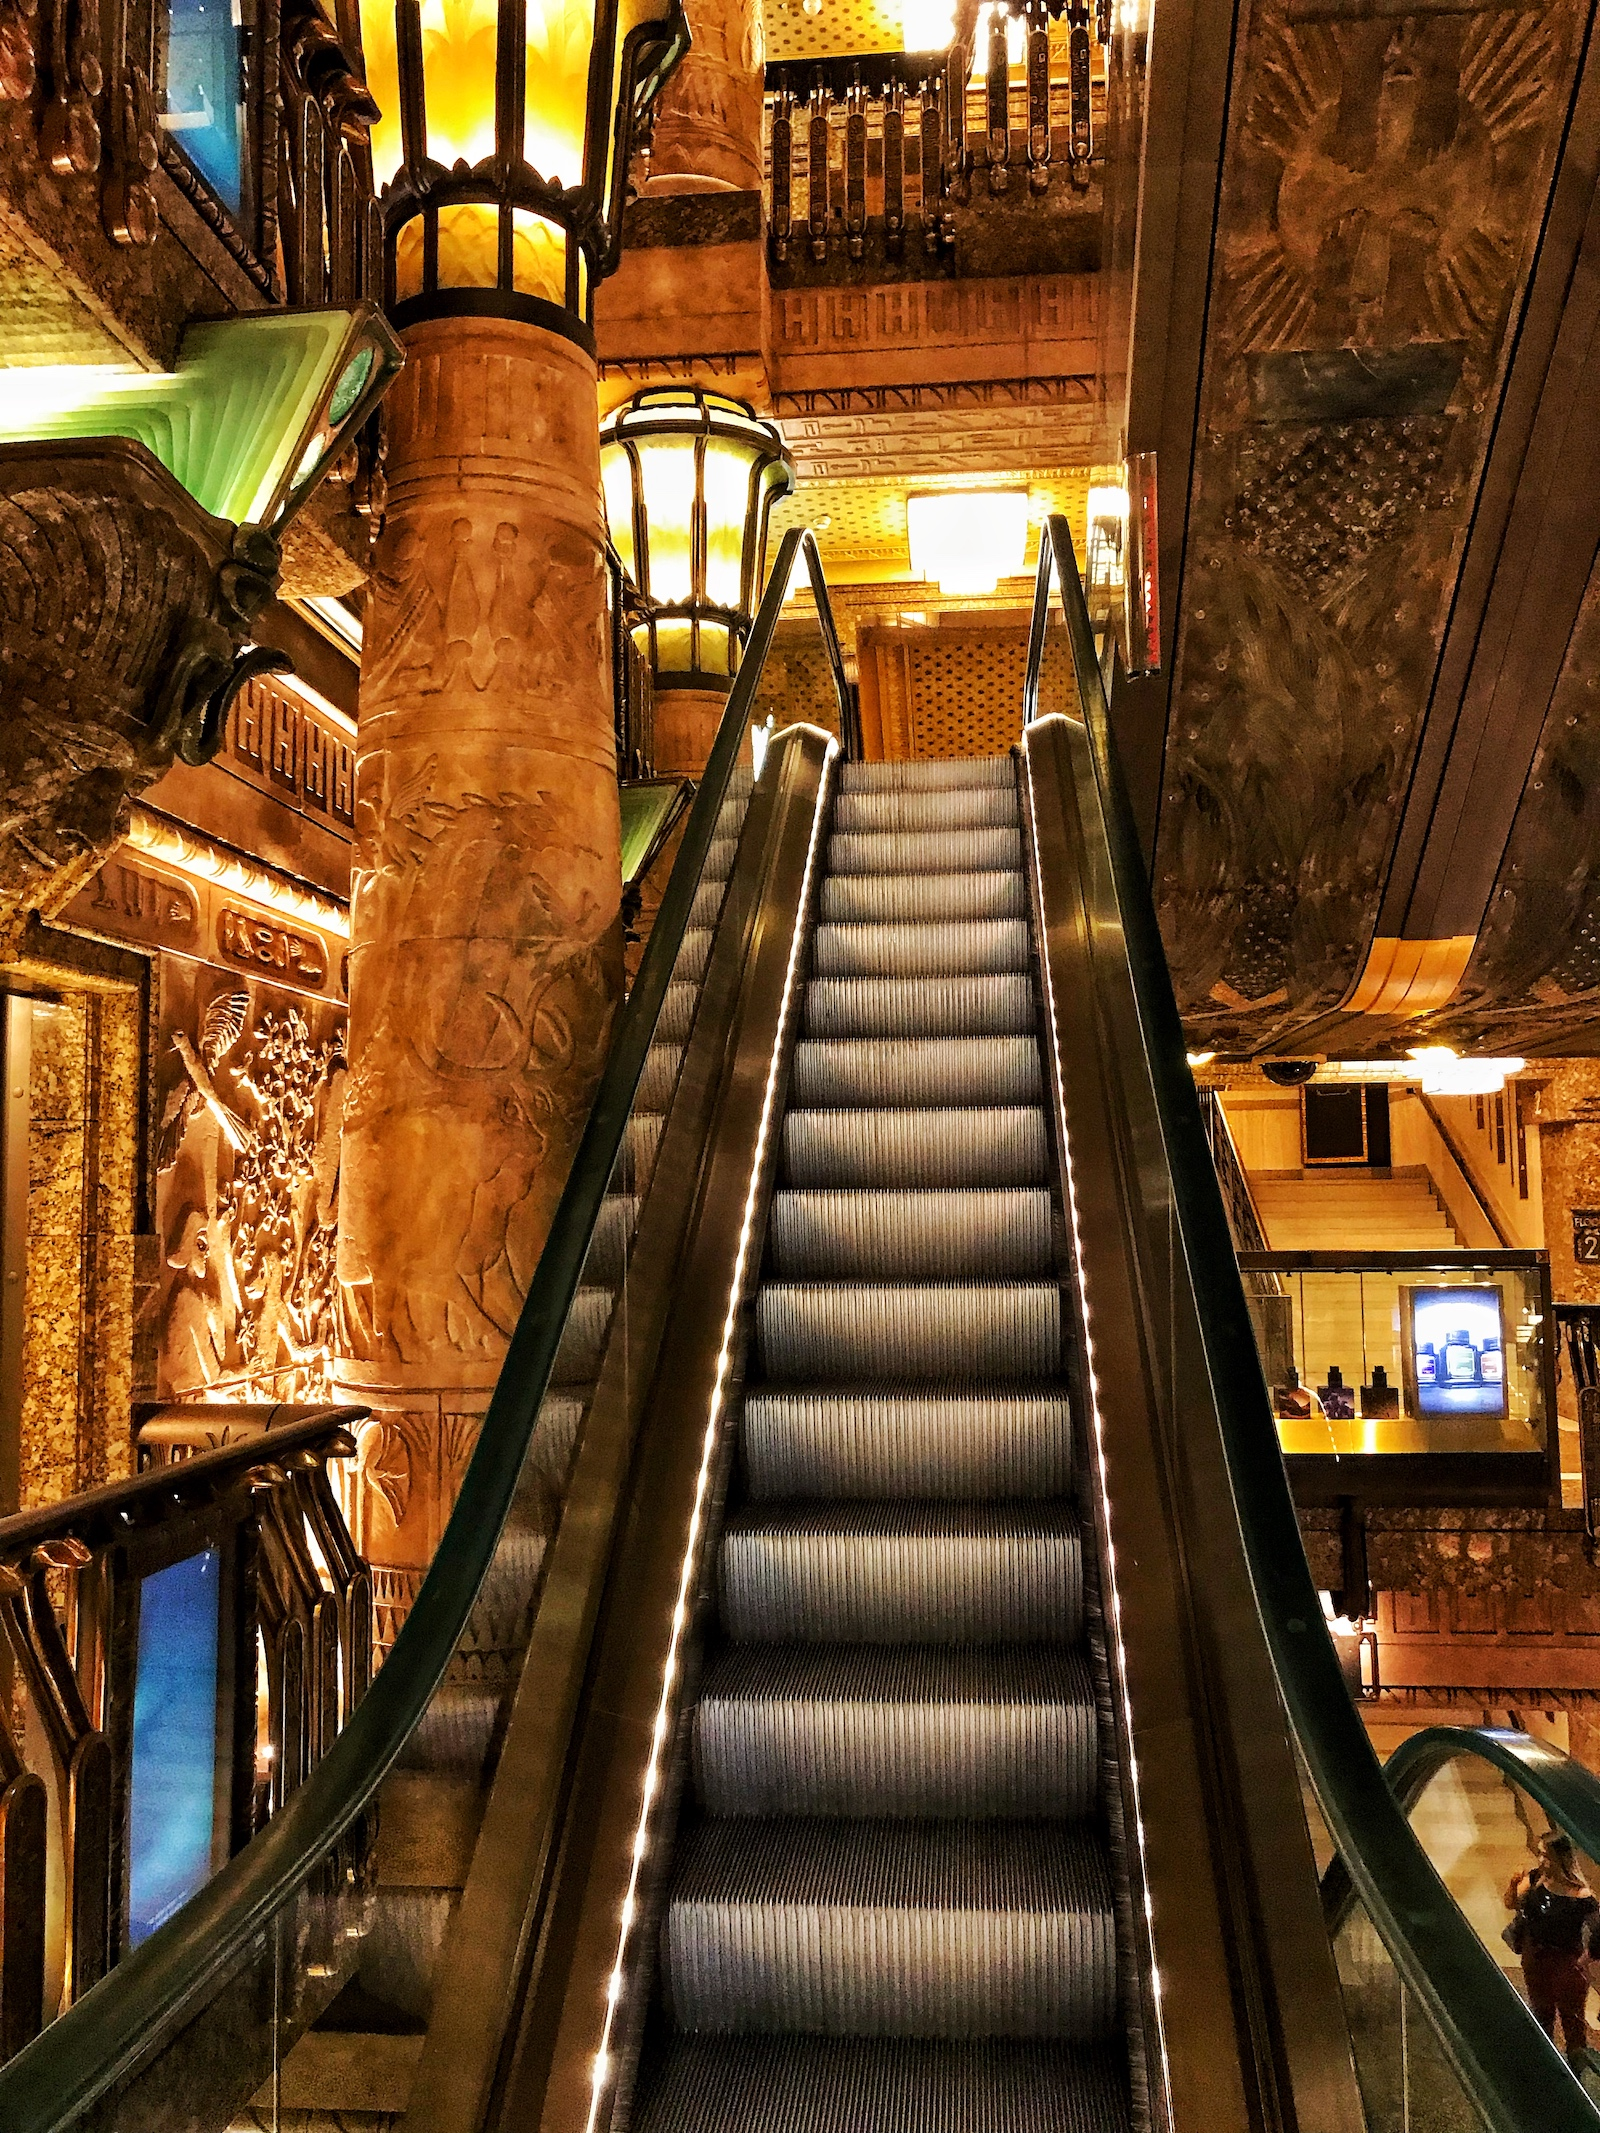 Elevator Harrods Single Looking Up.jpg